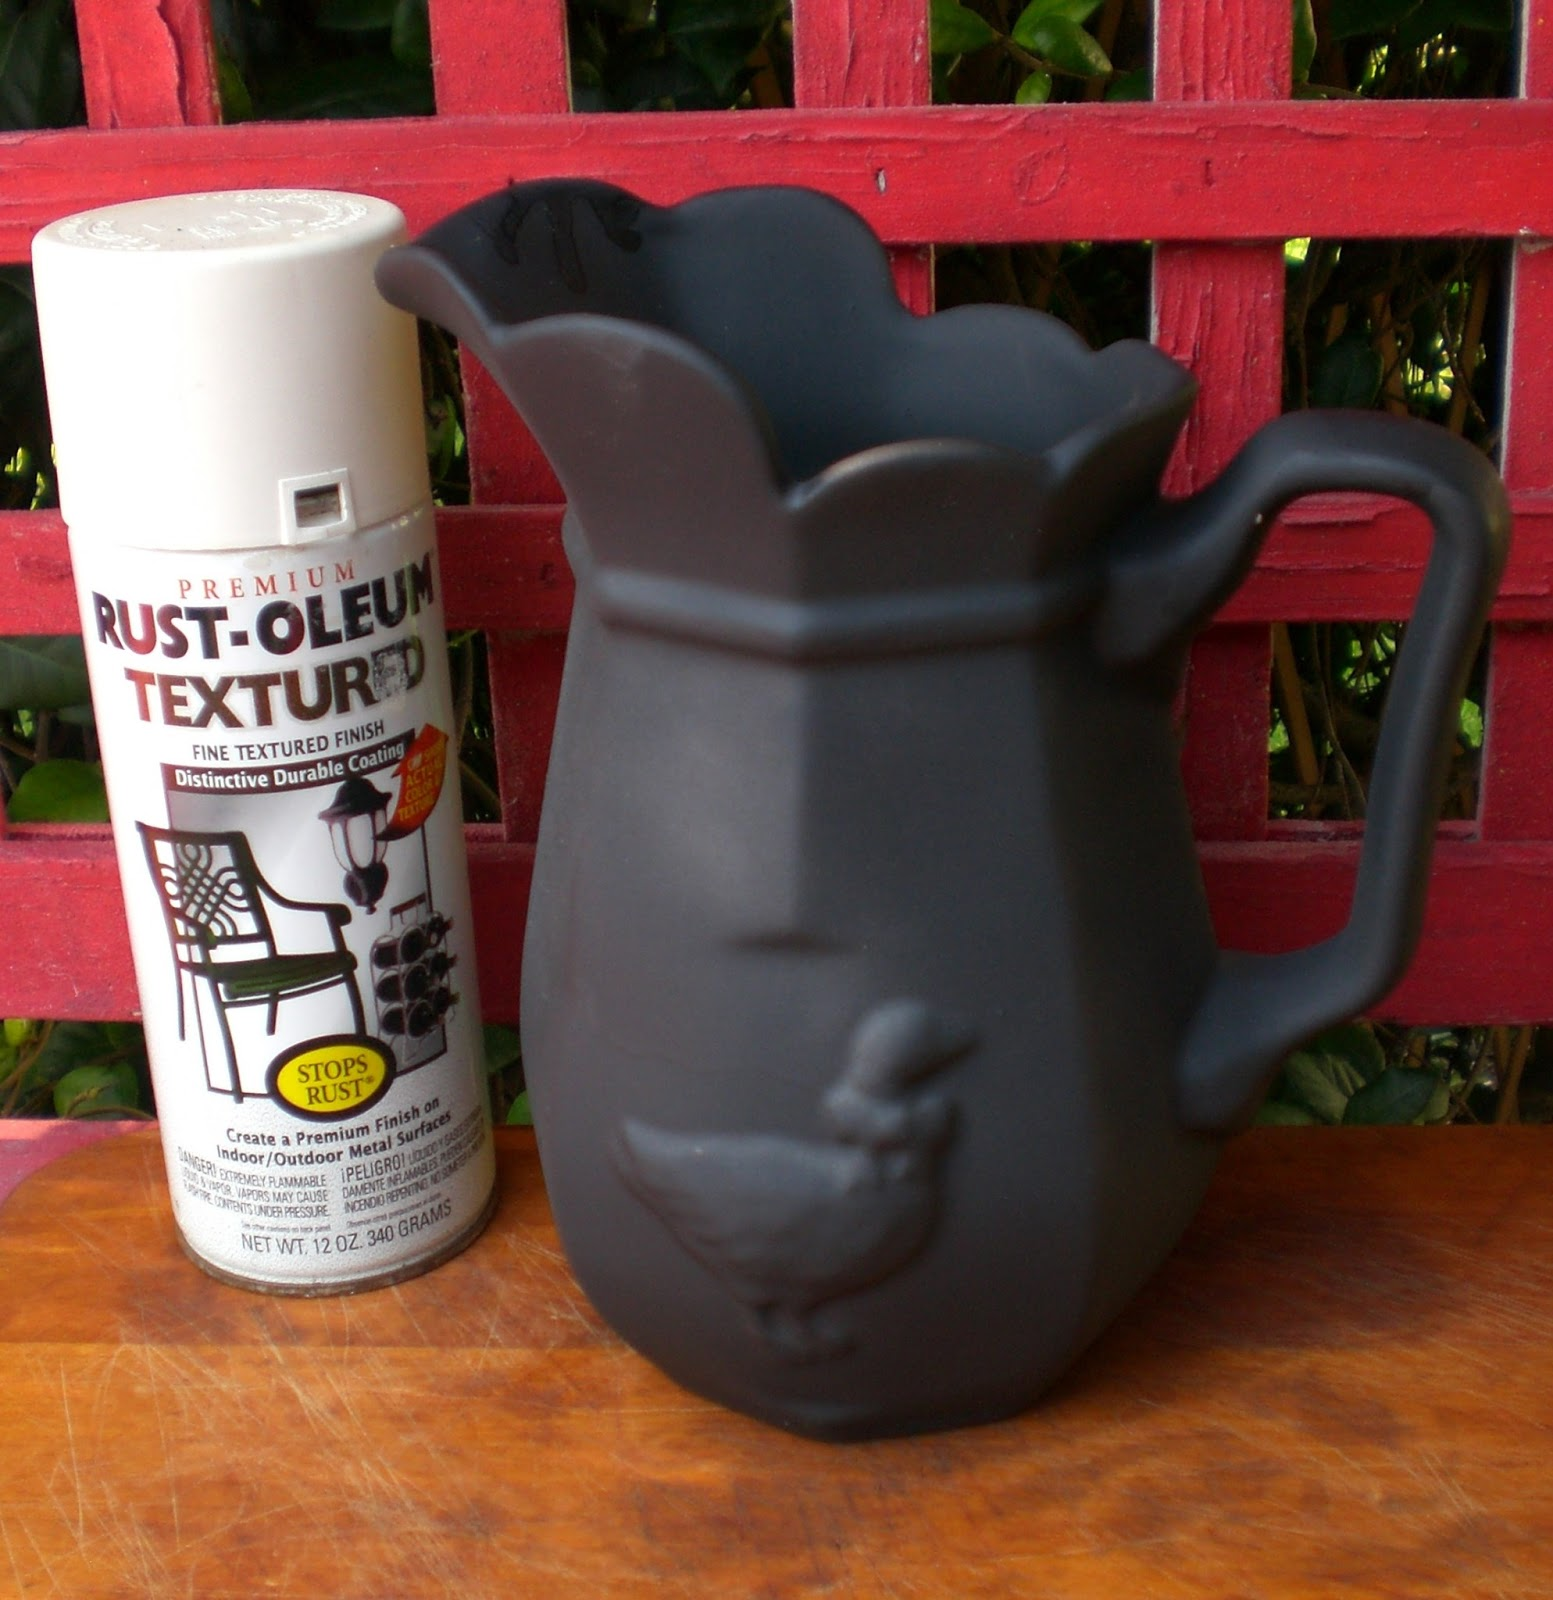 Black Textured Spray Paint RustOleum Stops Rust 12 oz Protective